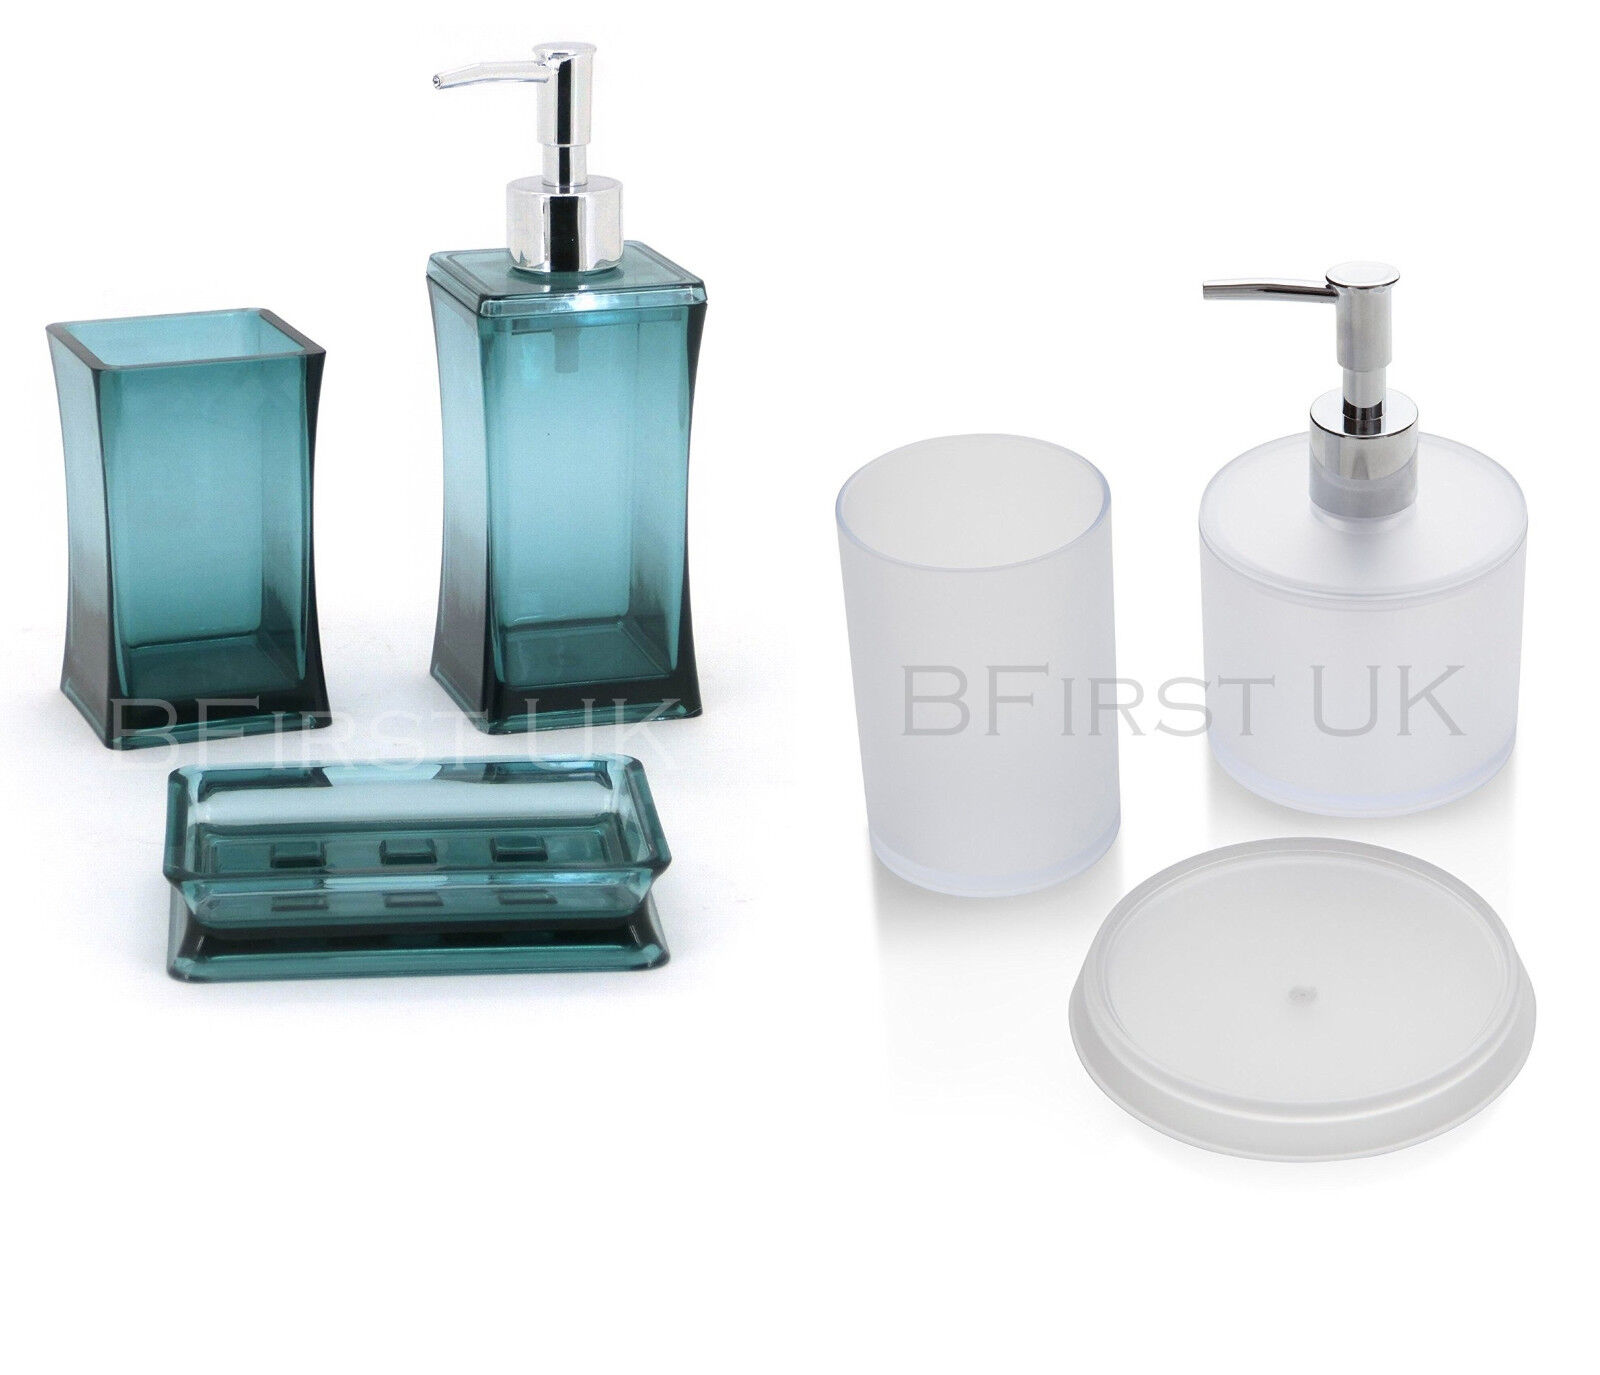 3pc round square bathroom glass chrome accessory set tumbler dispenser soap dish ebay - Bathroom soap dish sets ...